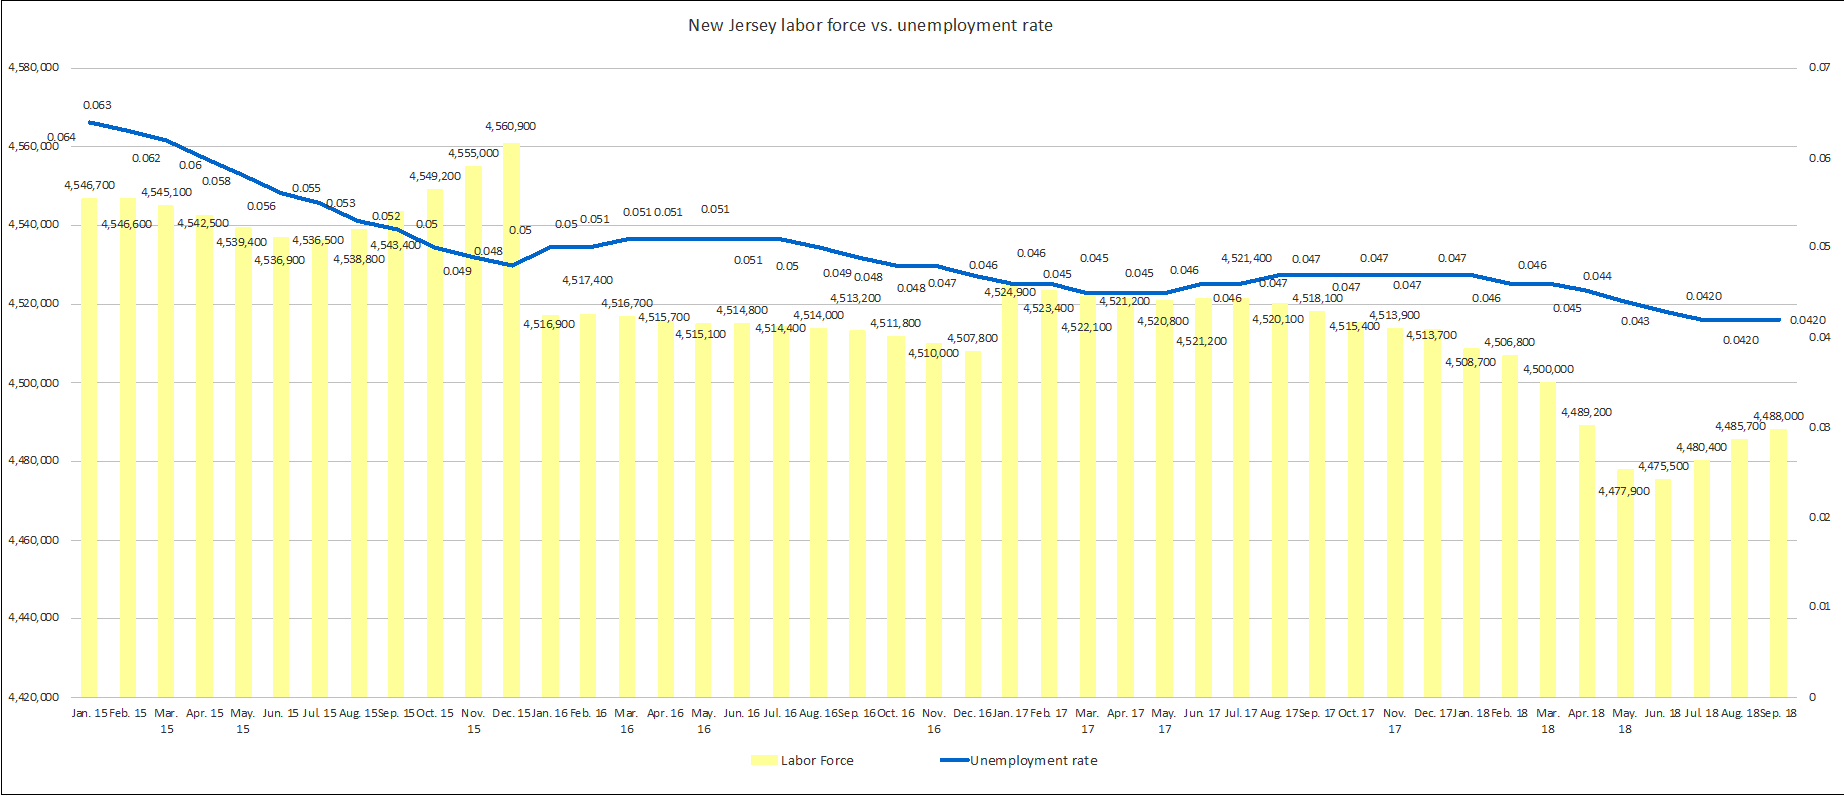 New Jersey Labor Force vs. Unemployment Rate, 1/15 - 9/18